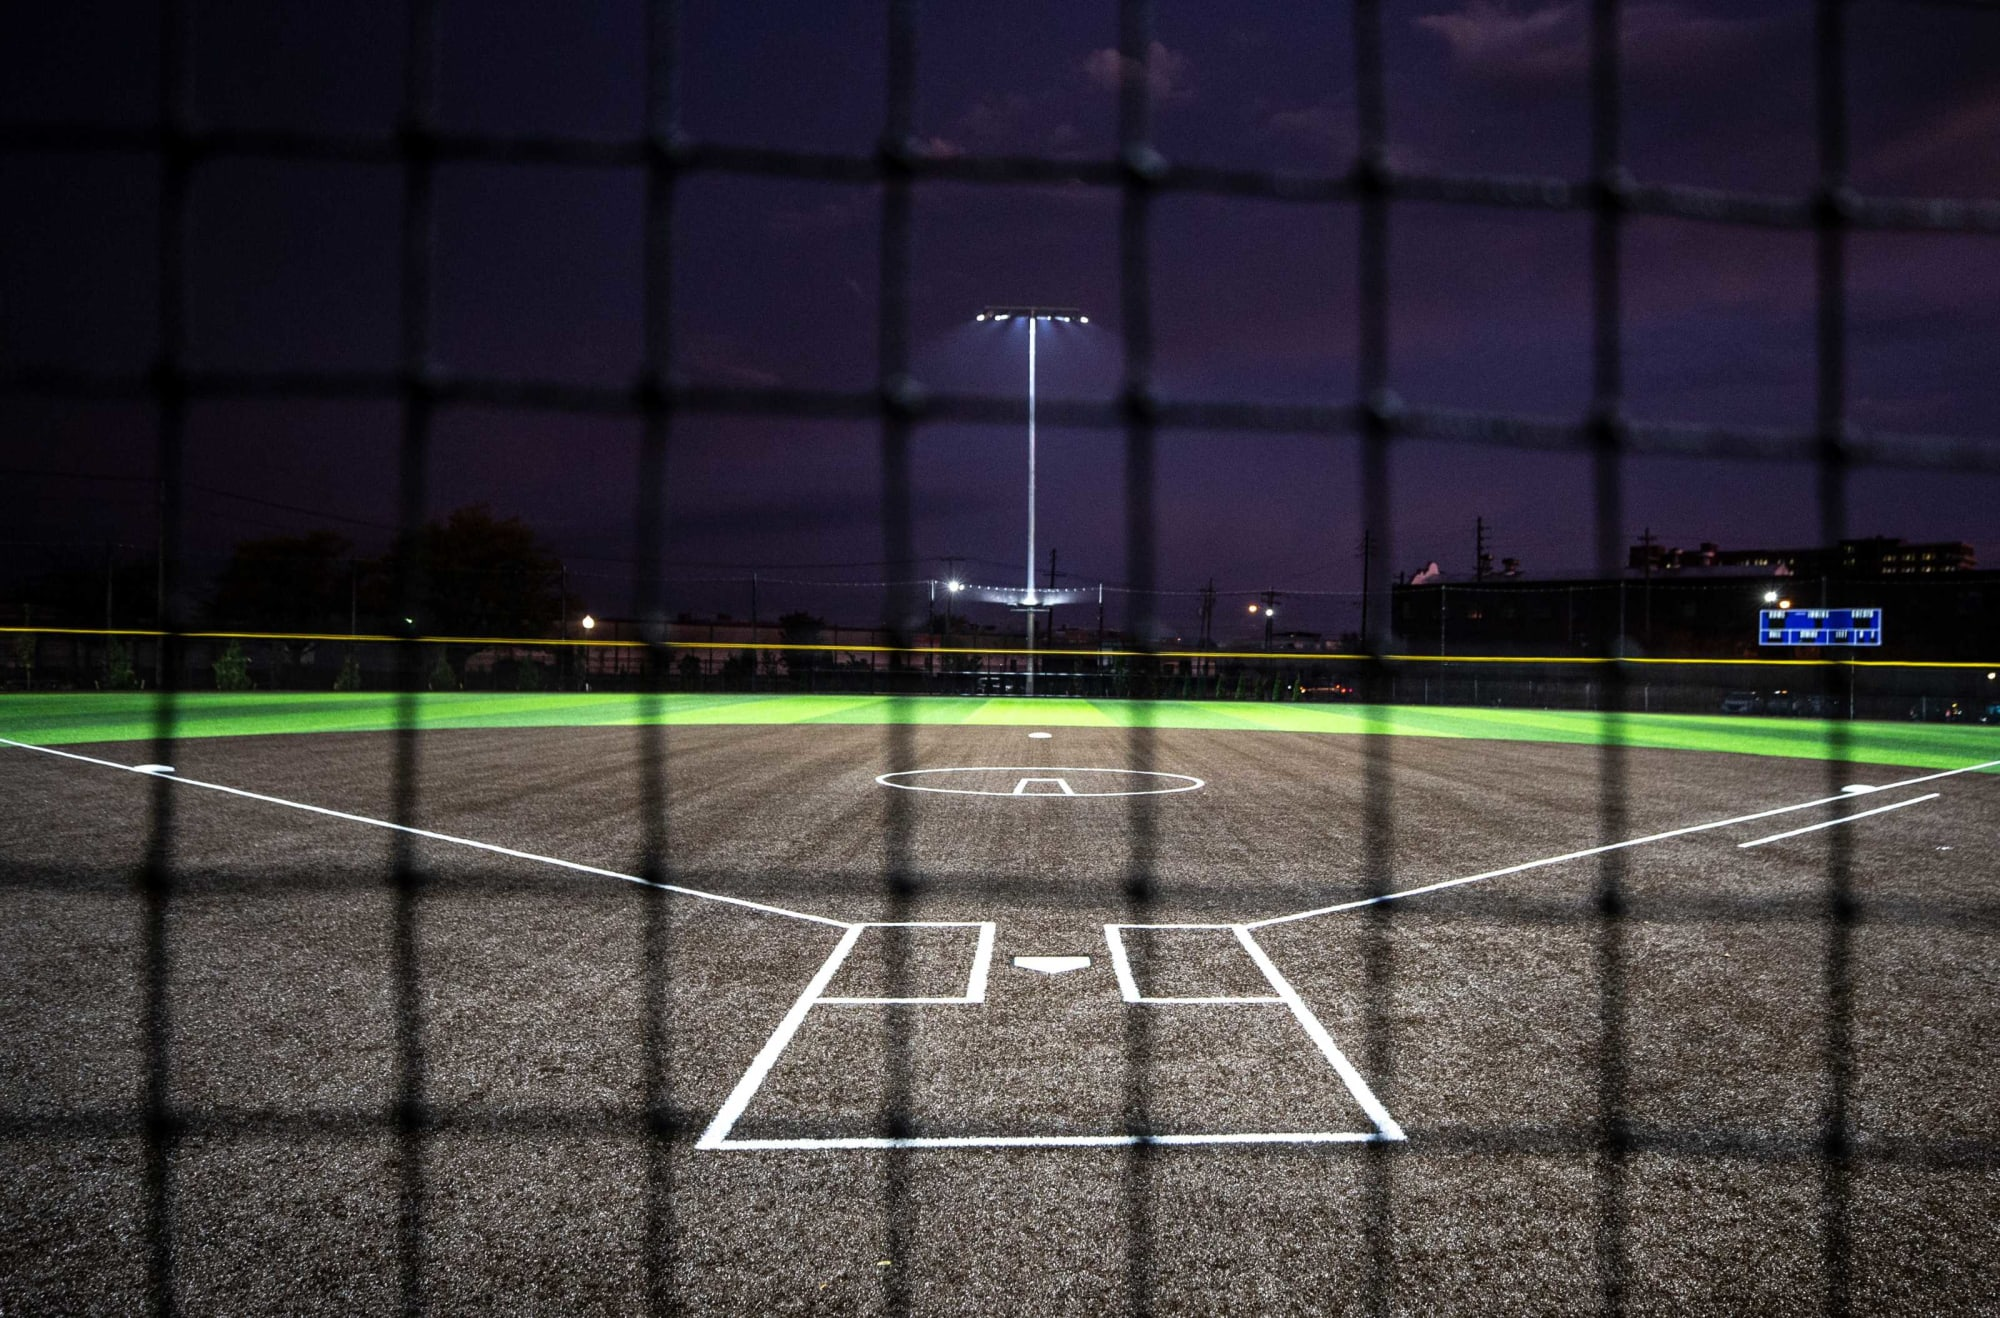 Oklahoma softball: Two Big 12 heavyweights go at it with 1st place on line